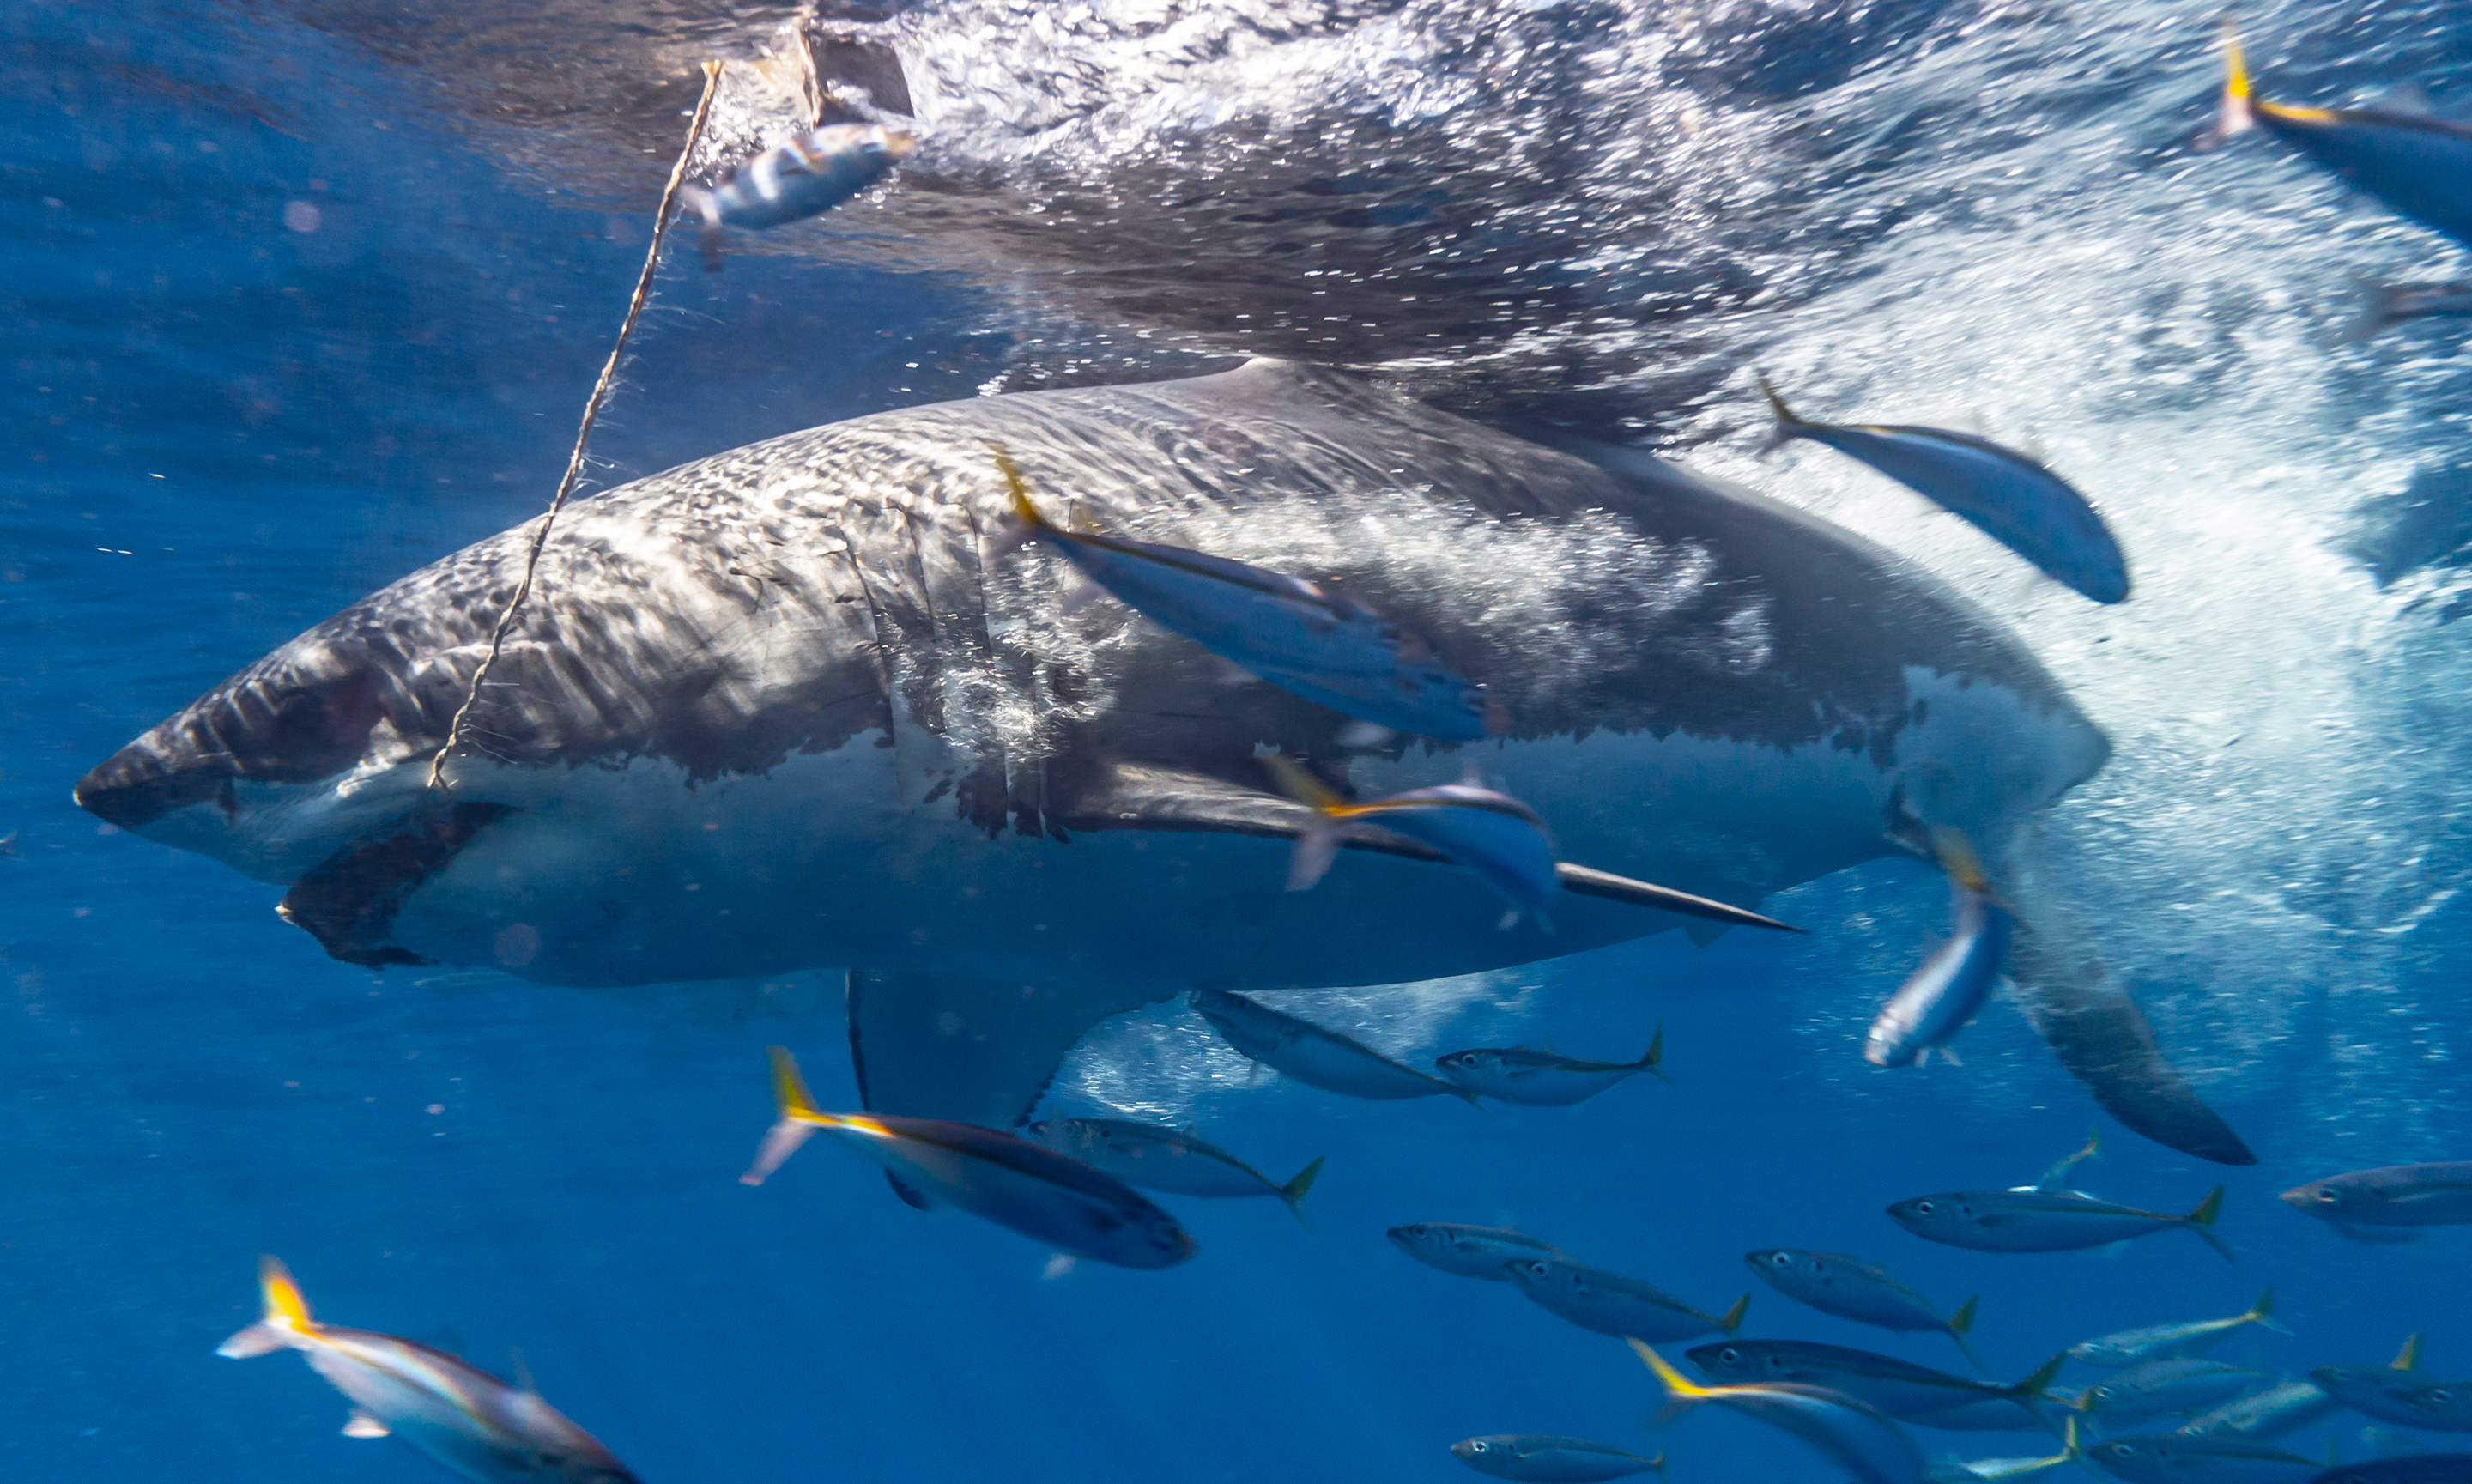 A juvenile great white chomps the tuna